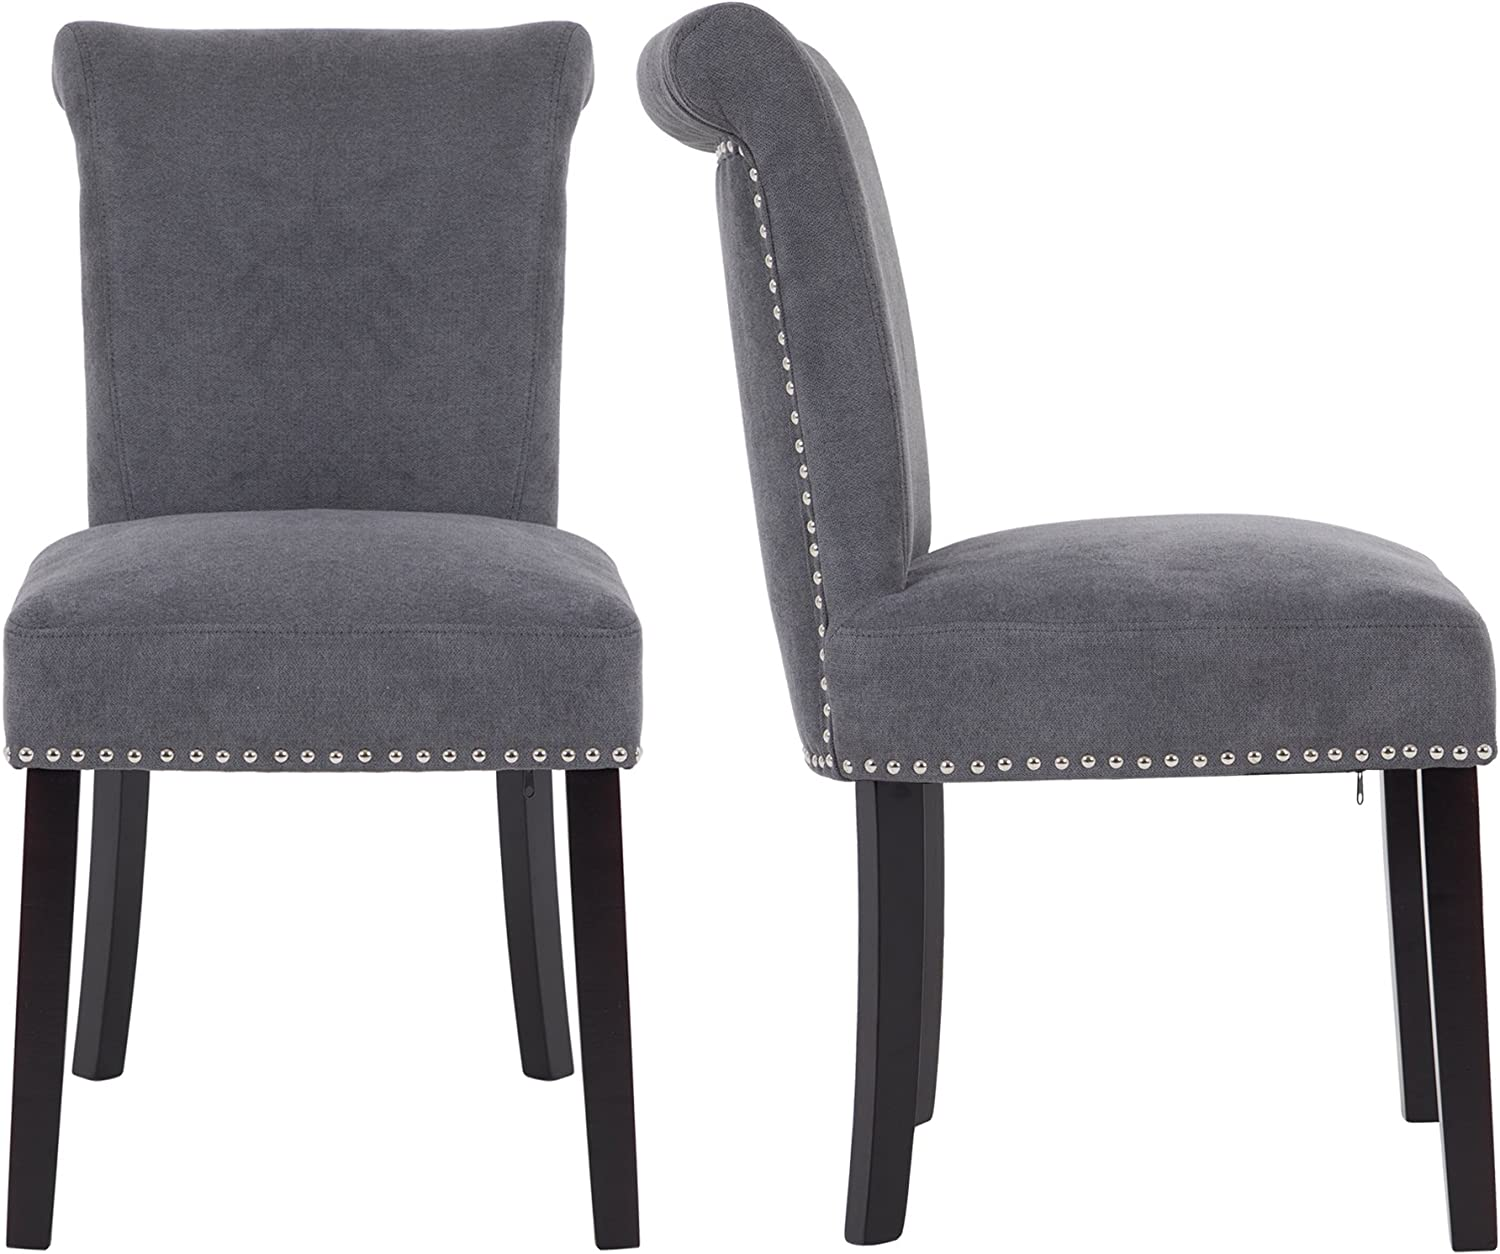 LSSPAID Upholstered Dining Chair with Polished Nailhead Wood Legs in Grey,Set of 2